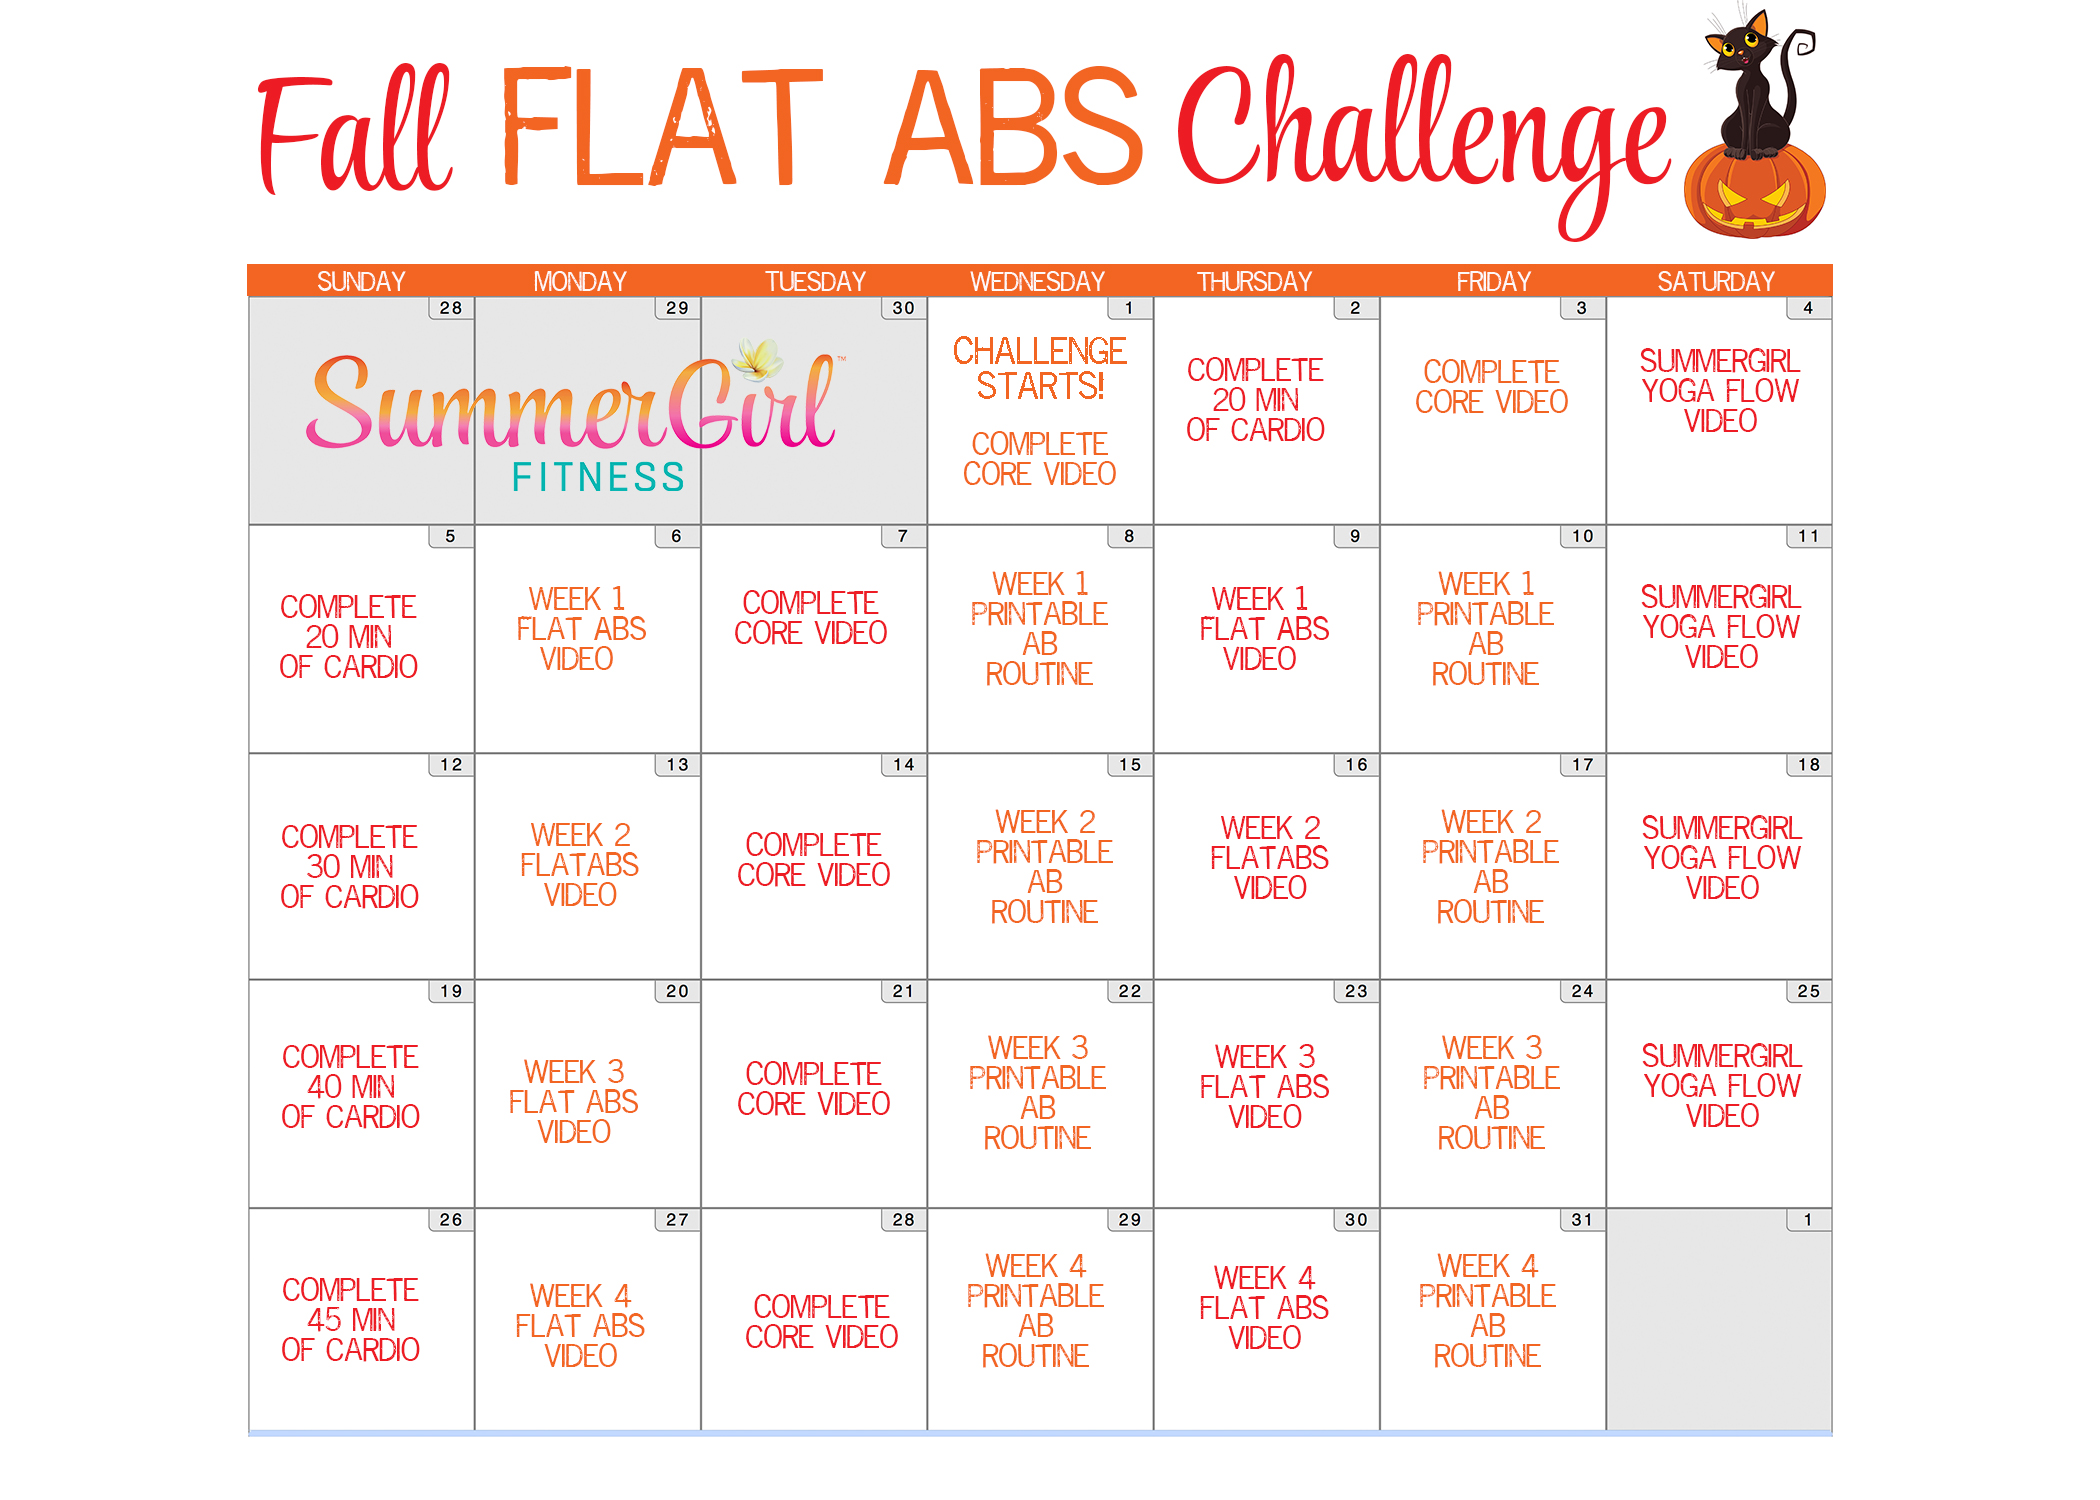 Fall Flat Abs Challenge | SummerGirl Fitness